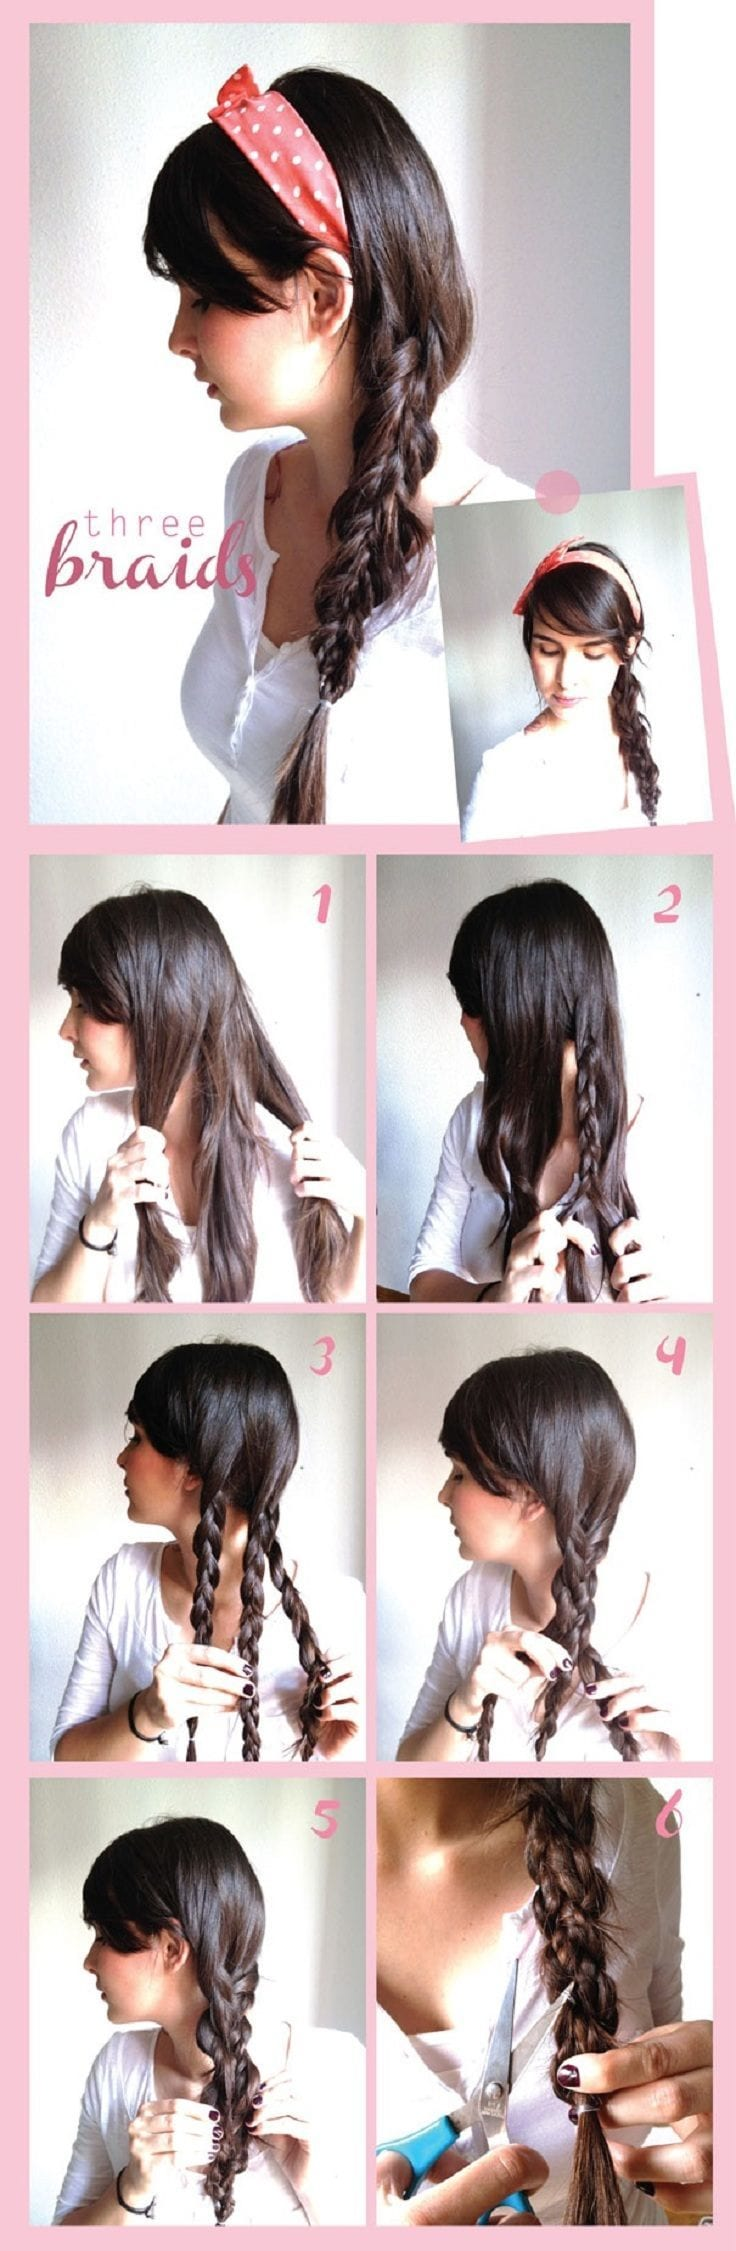 20 cute and easy braided hairstyle tutorials solutioingenieria Image collections